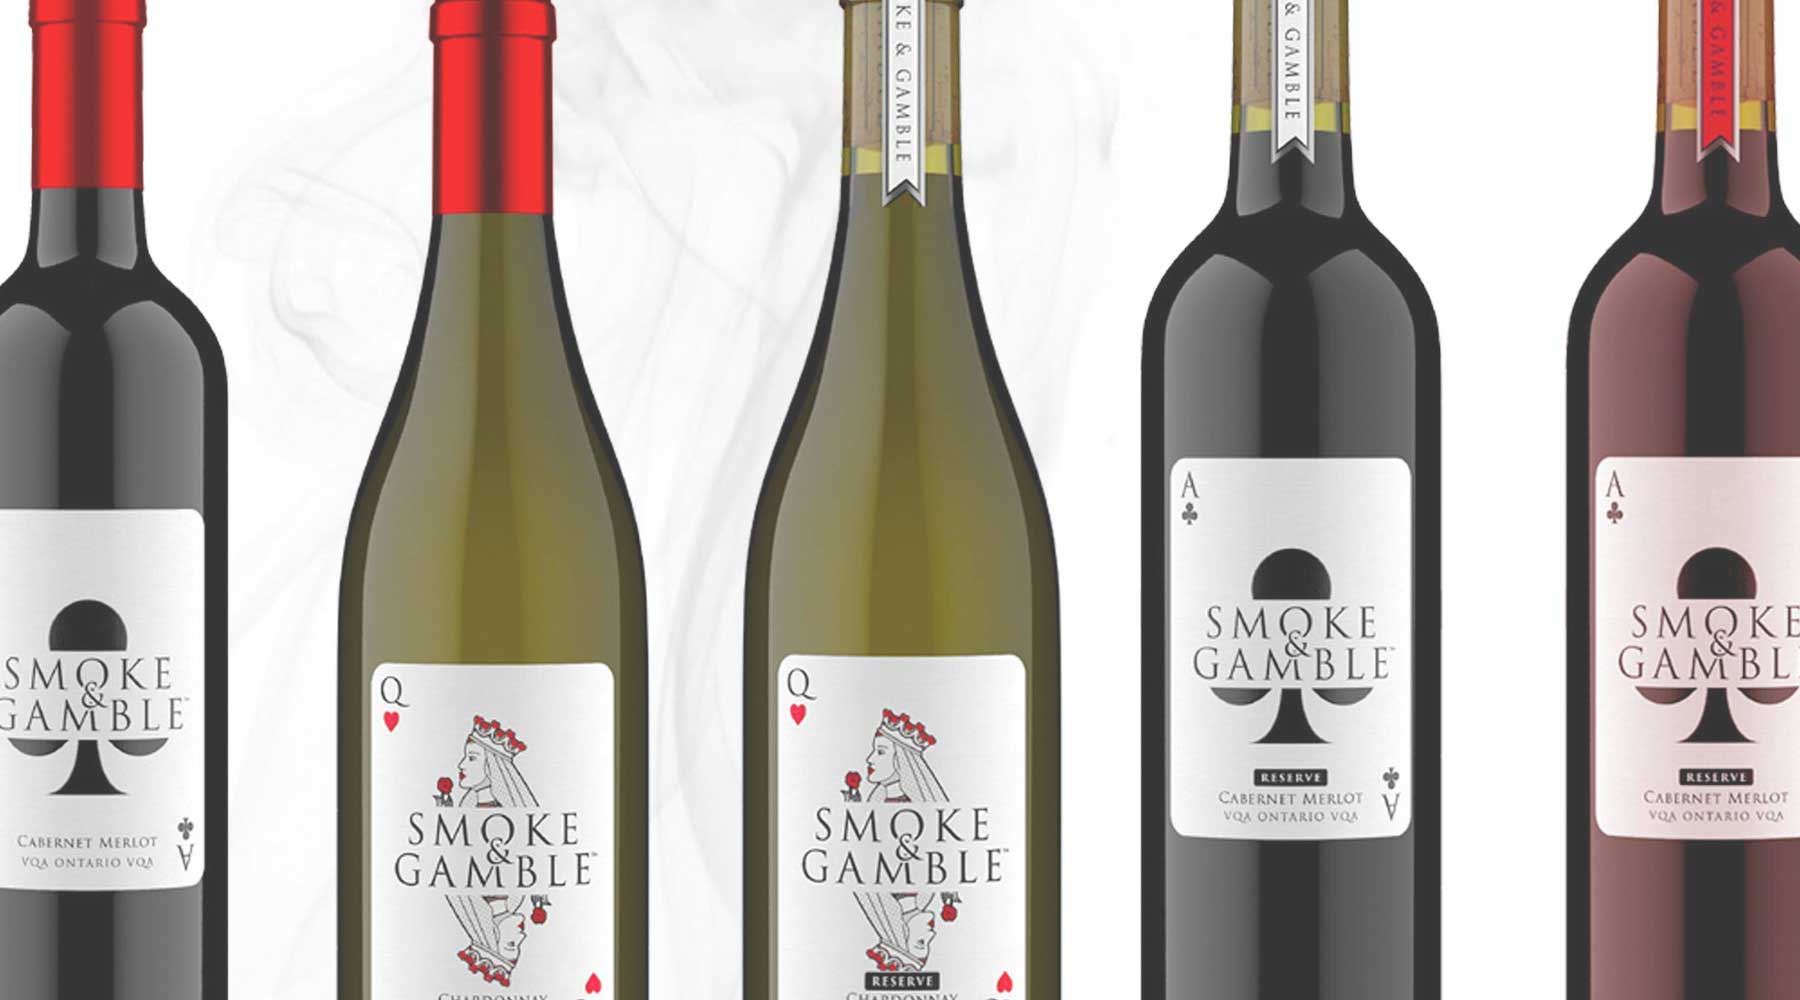 Smoke & Gamble | Just Wine